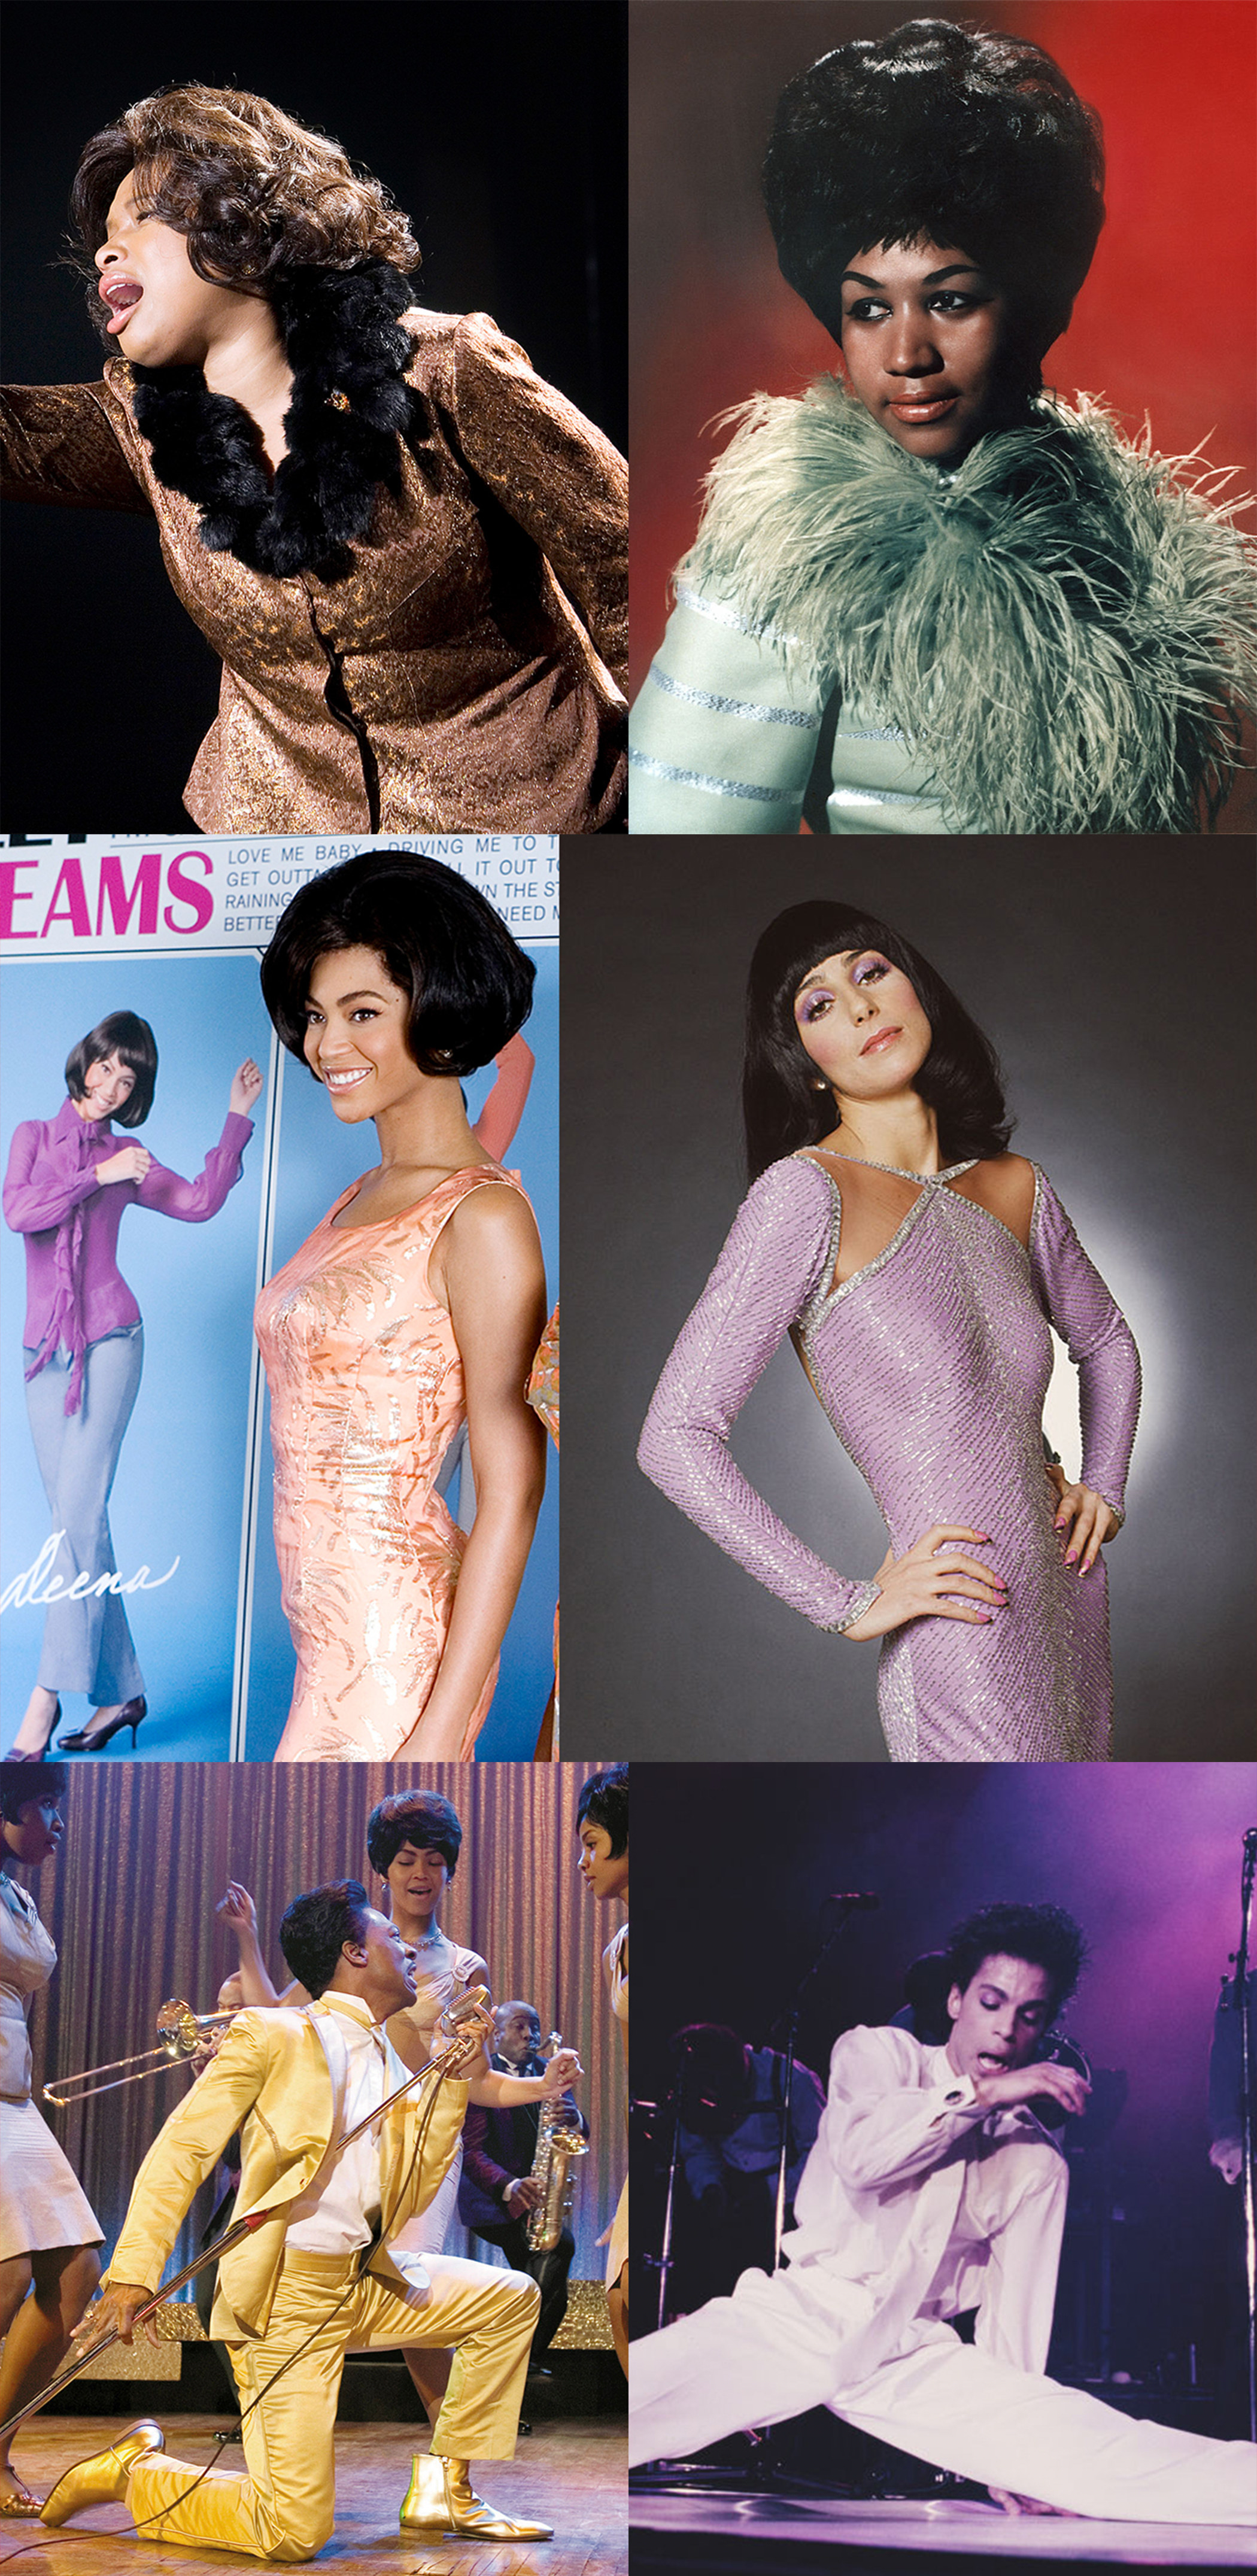 both Jennifer Hudson and Aretha Franklin wear fluffy collars, Beyoncé and Cher have slinky dresses, and Eddie Murphy and Prince have snazzy suits